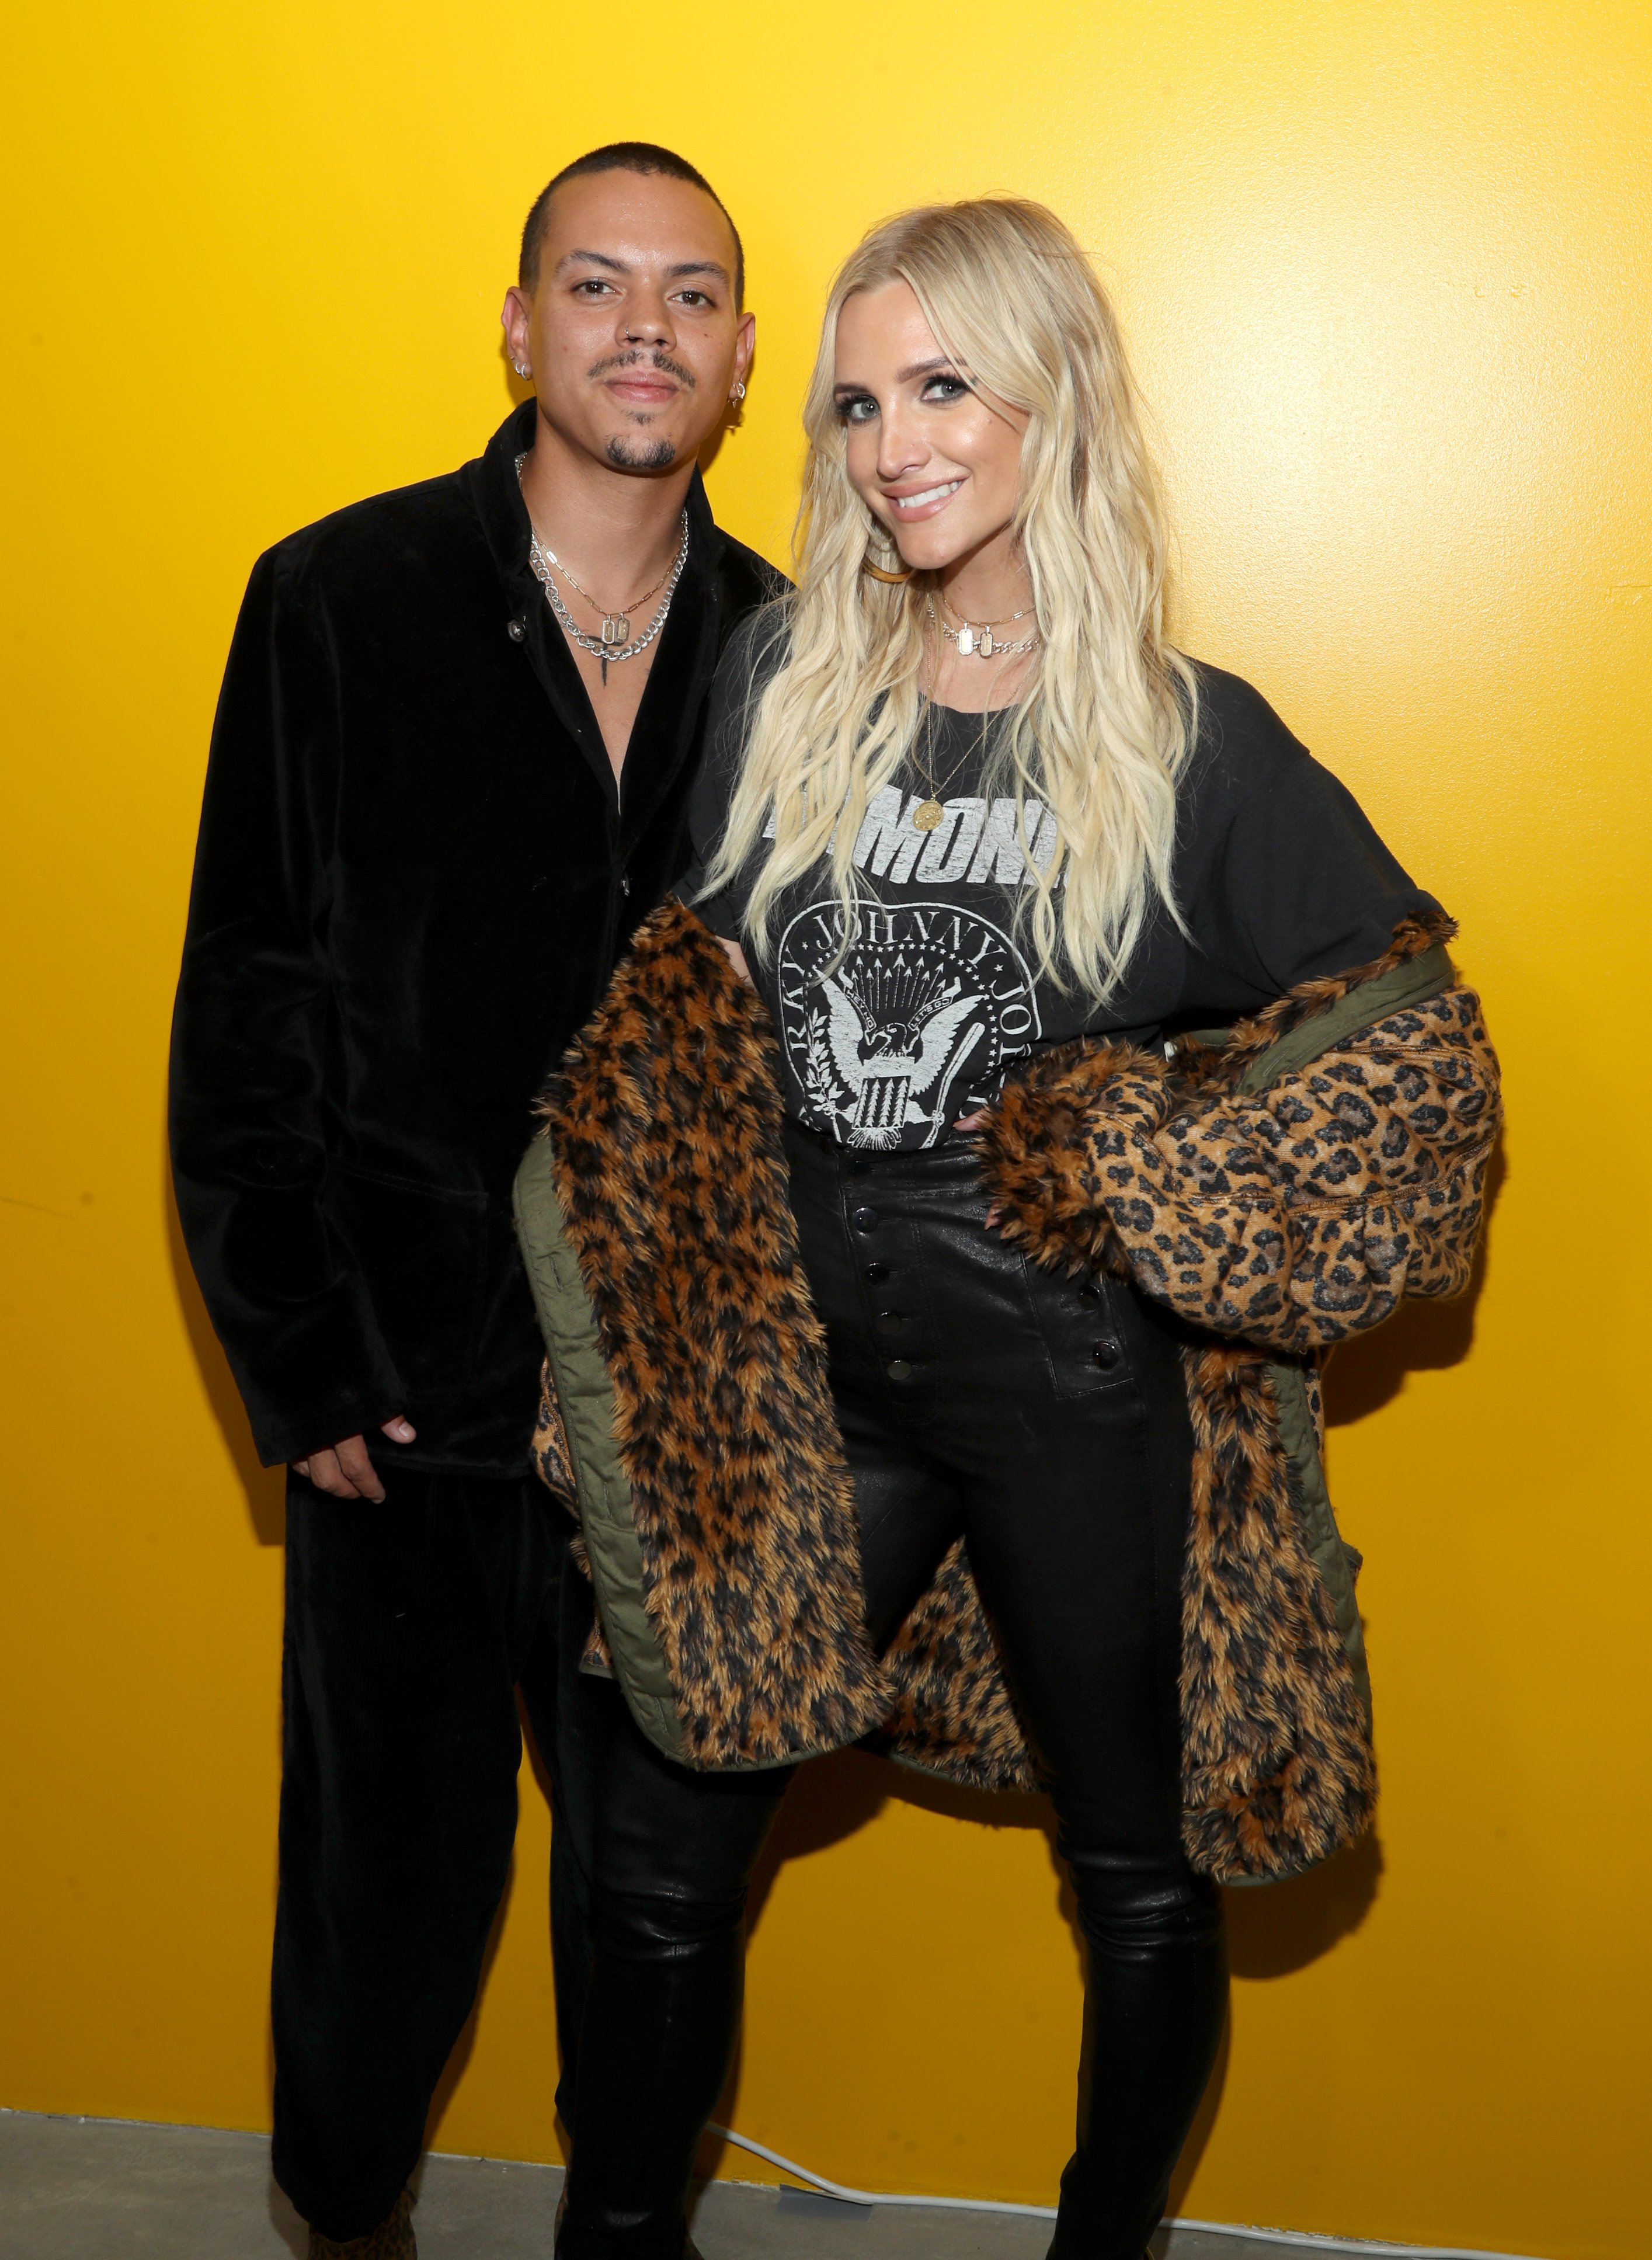 """Evan Ross and his wife Ashlee Simpson Ross at """"The Art of Clean Vapor"""" in Los Angeles, 2019 